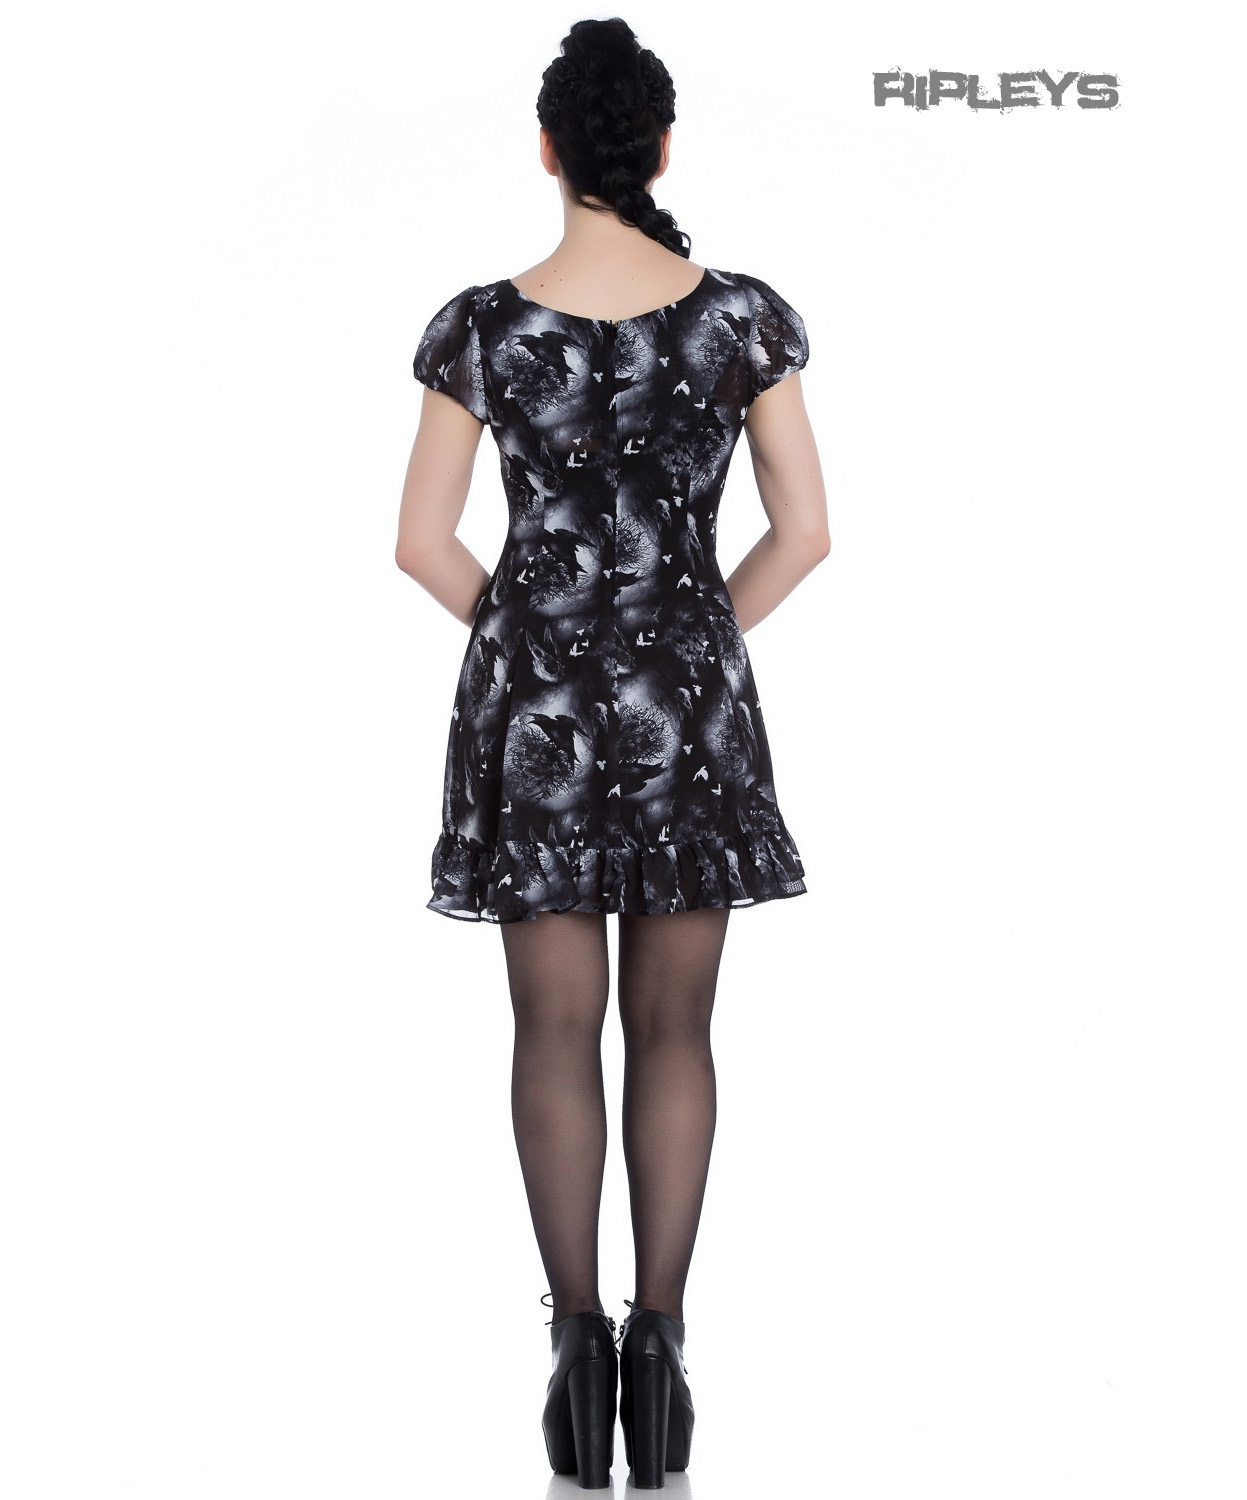 Hell-Bunny-Alchemy-Gothic-Black-Skater-Mini-Dress-ASH-Crows-Skulls-All-Sizes thumbnail 4